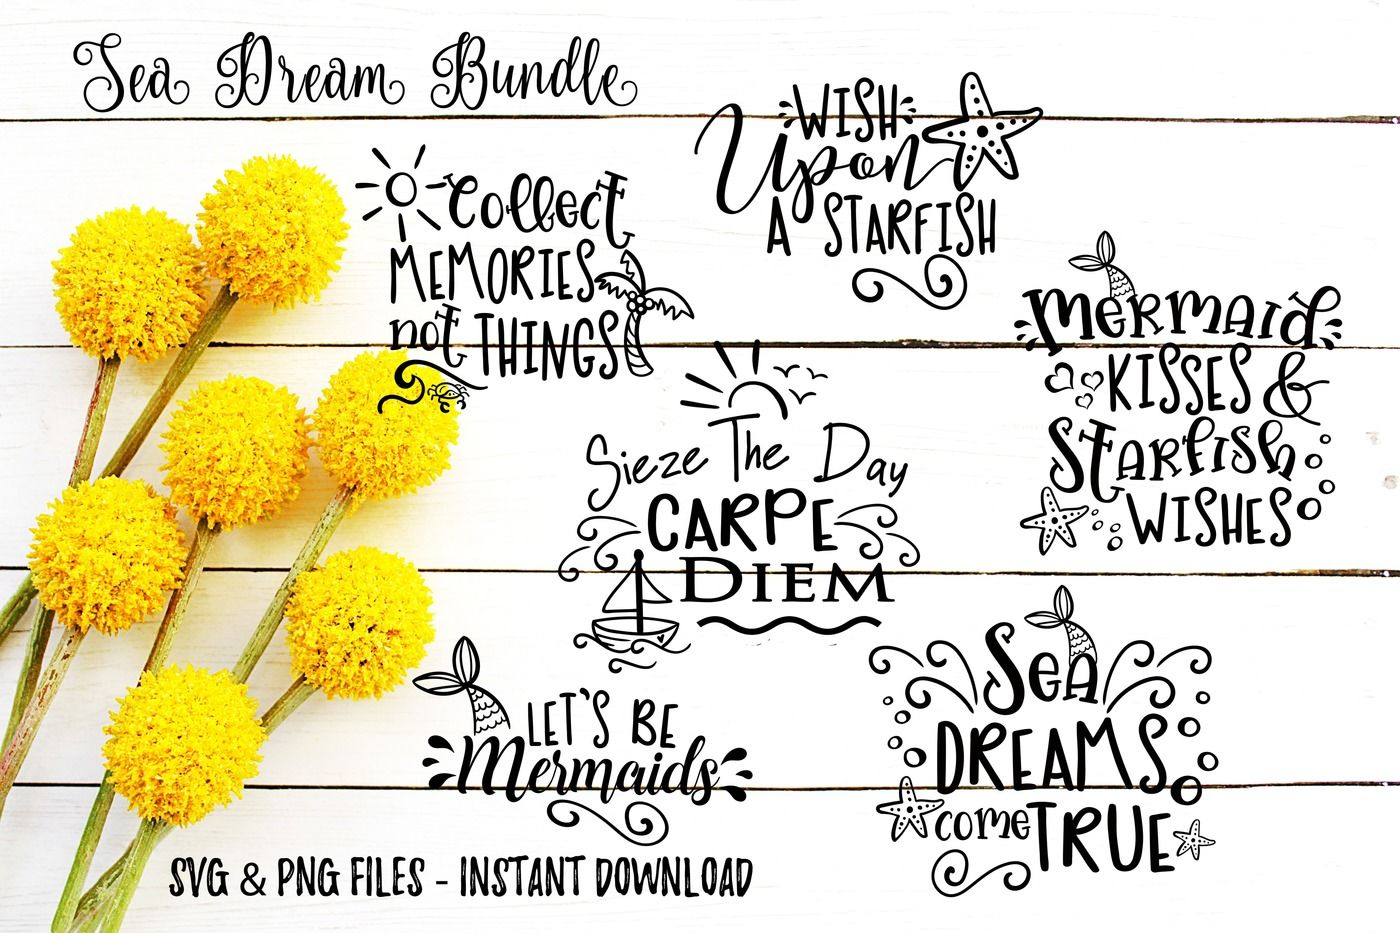 Sea Dream Svg Bundle Includes 6 Instant Download Print Cut Files